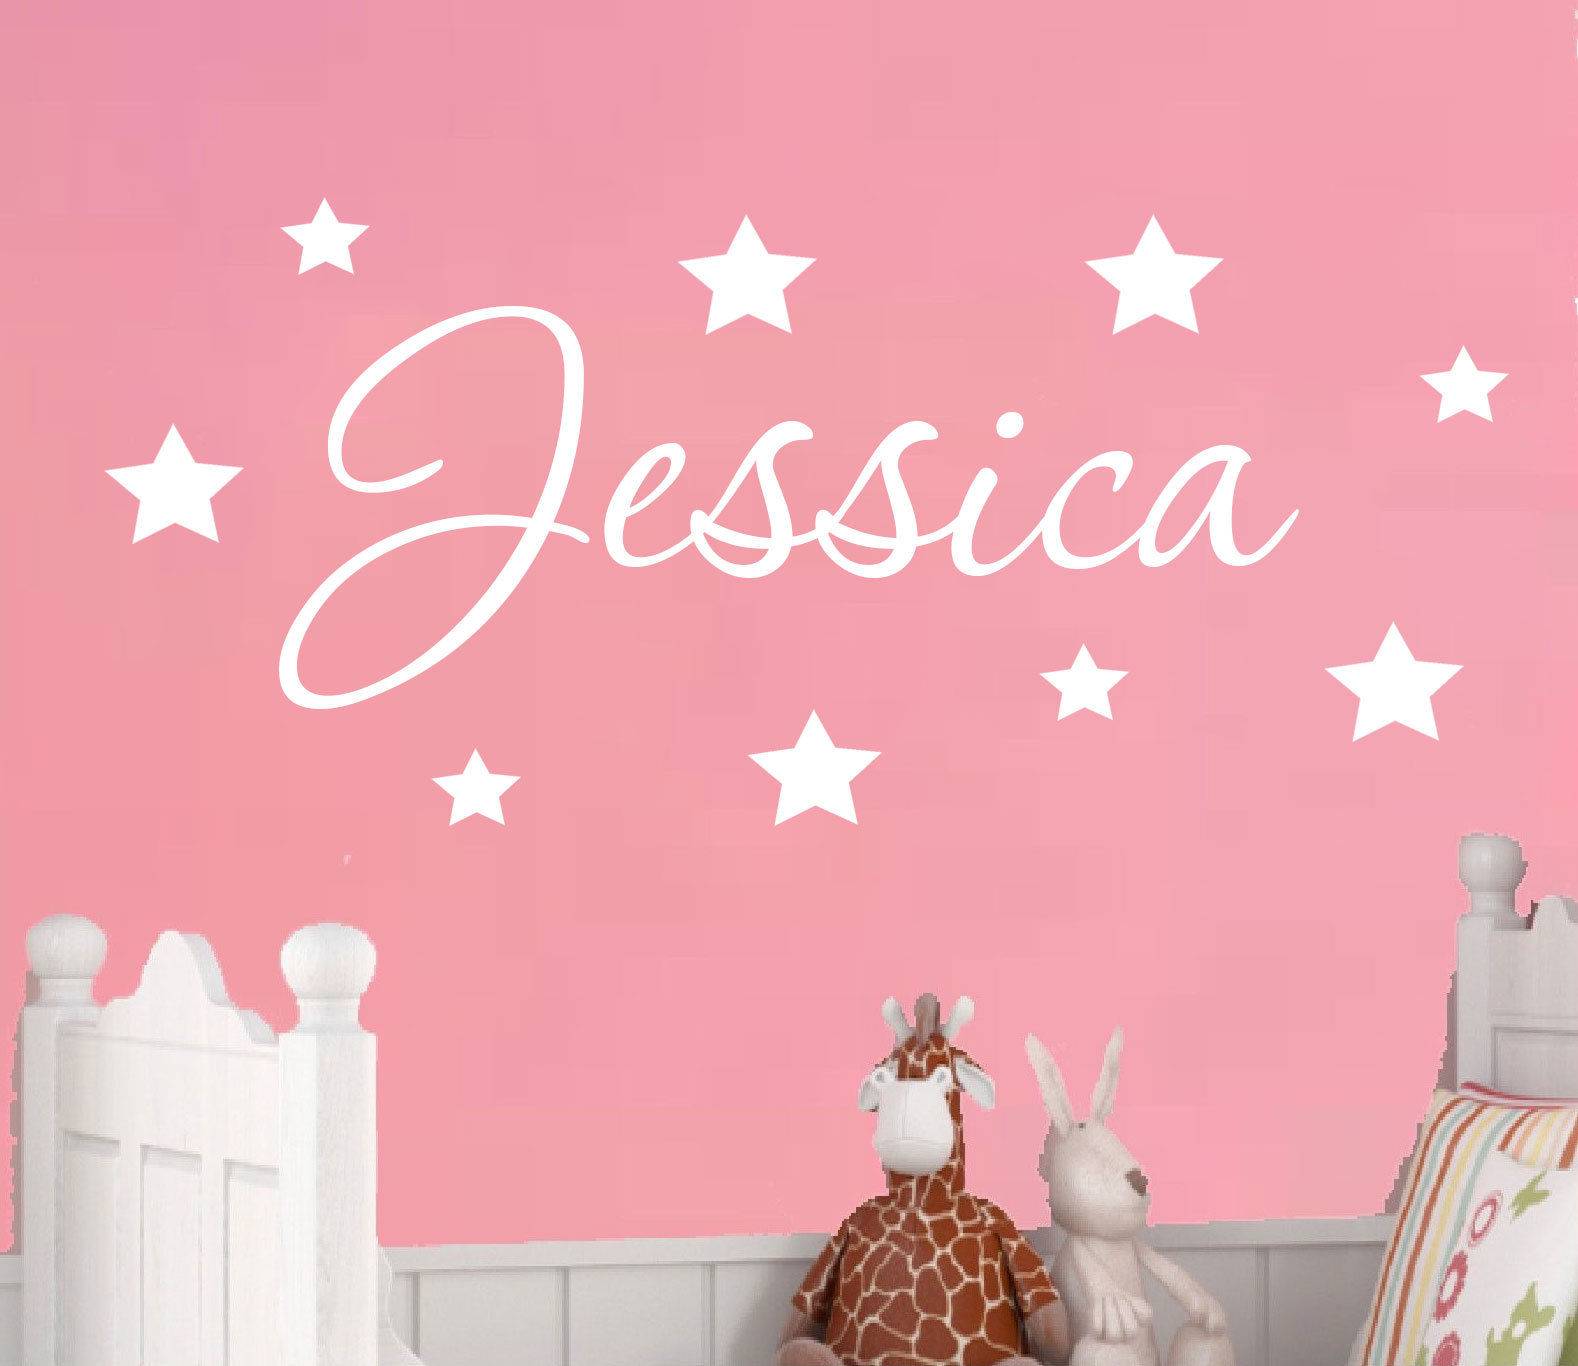 D198 Personalised Name Wall Sticker Decal Door Boys Girls Childrens Nursery  W/ Stars(China